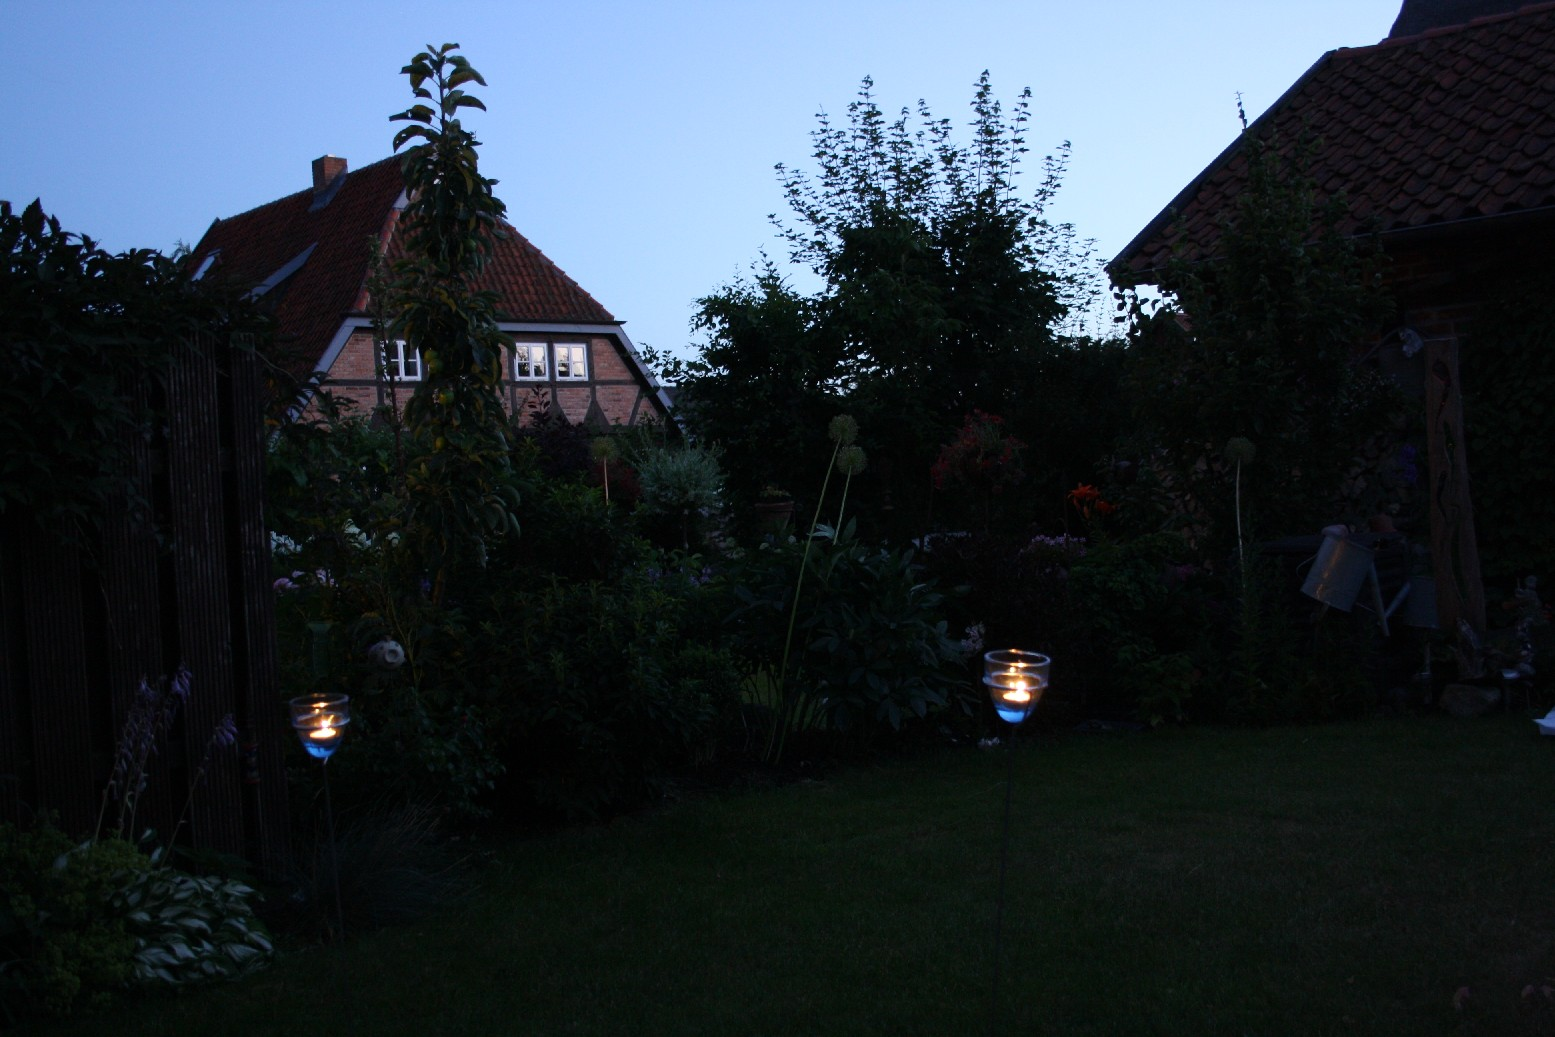 The first evening of our trip to the German Baltic coast we spent quietly in the garden of my parents' summer house.